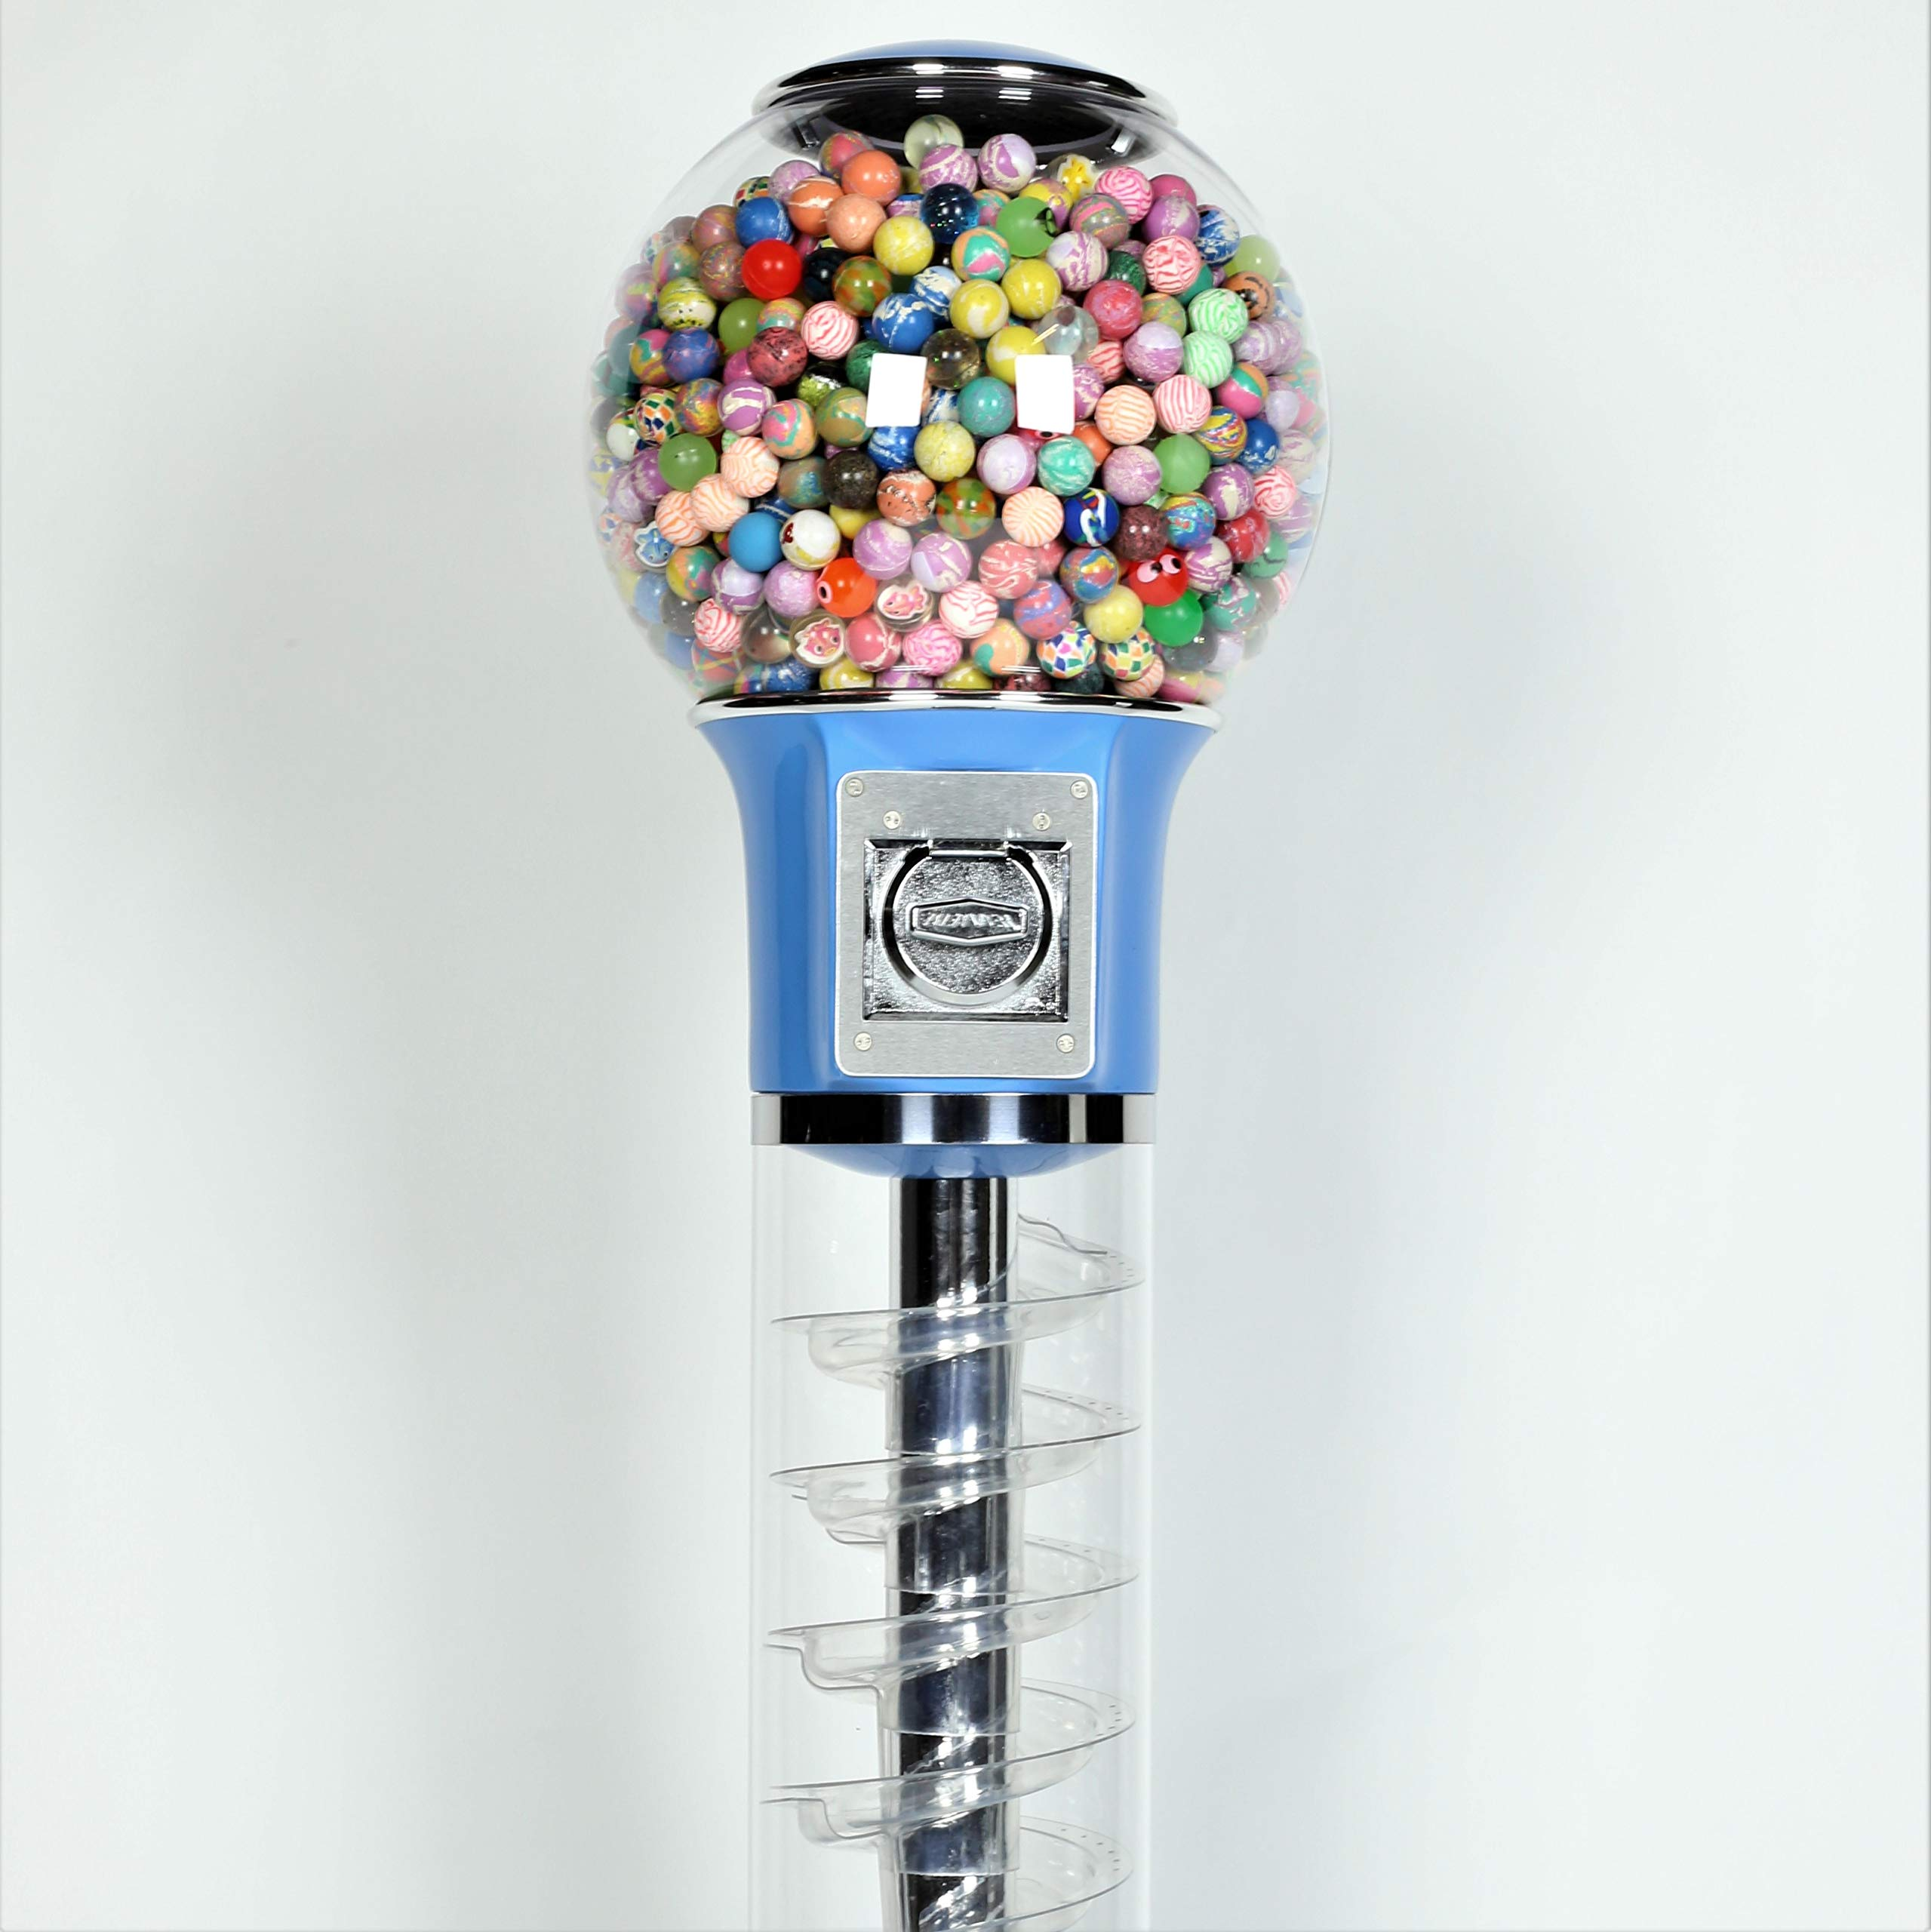 Wiz-Kid Wizard Spiral Gumball Vending Machine Height 4' - $0.25 - (Blue) by Global Gumball (Image #8)